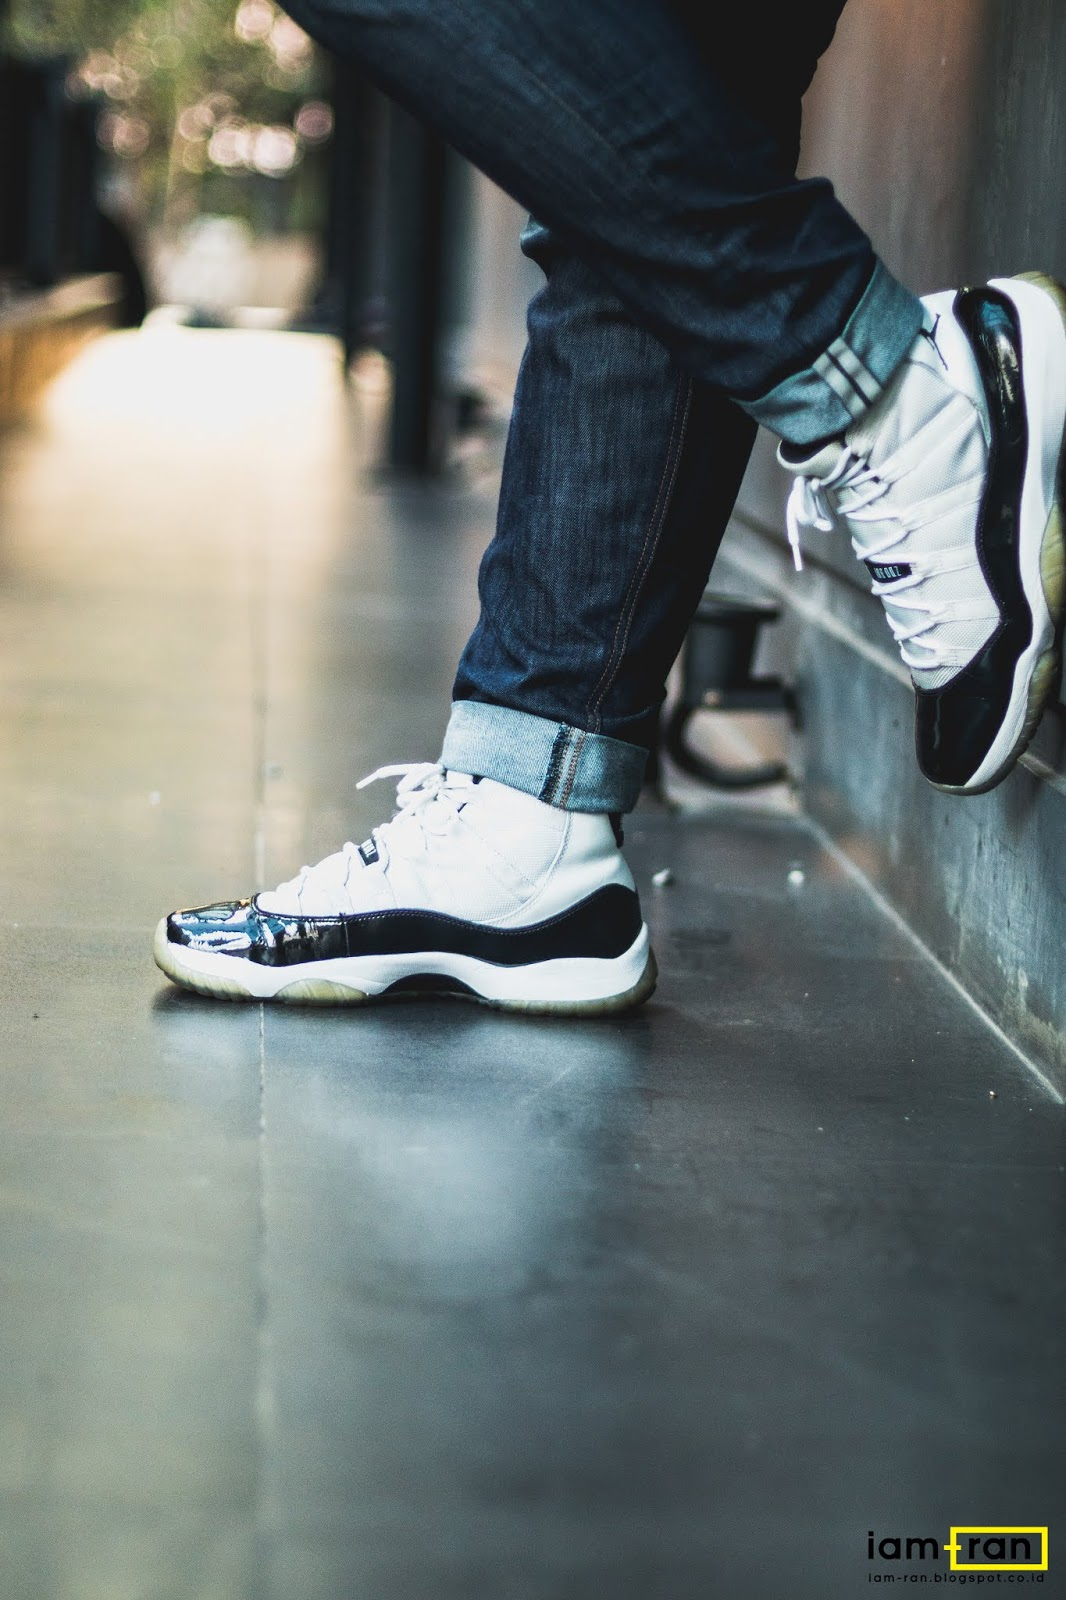 best authentic a25c0 874d0 IAM-RAN: ON FEET : Ryan - Nike Air Jordan 11 Concord